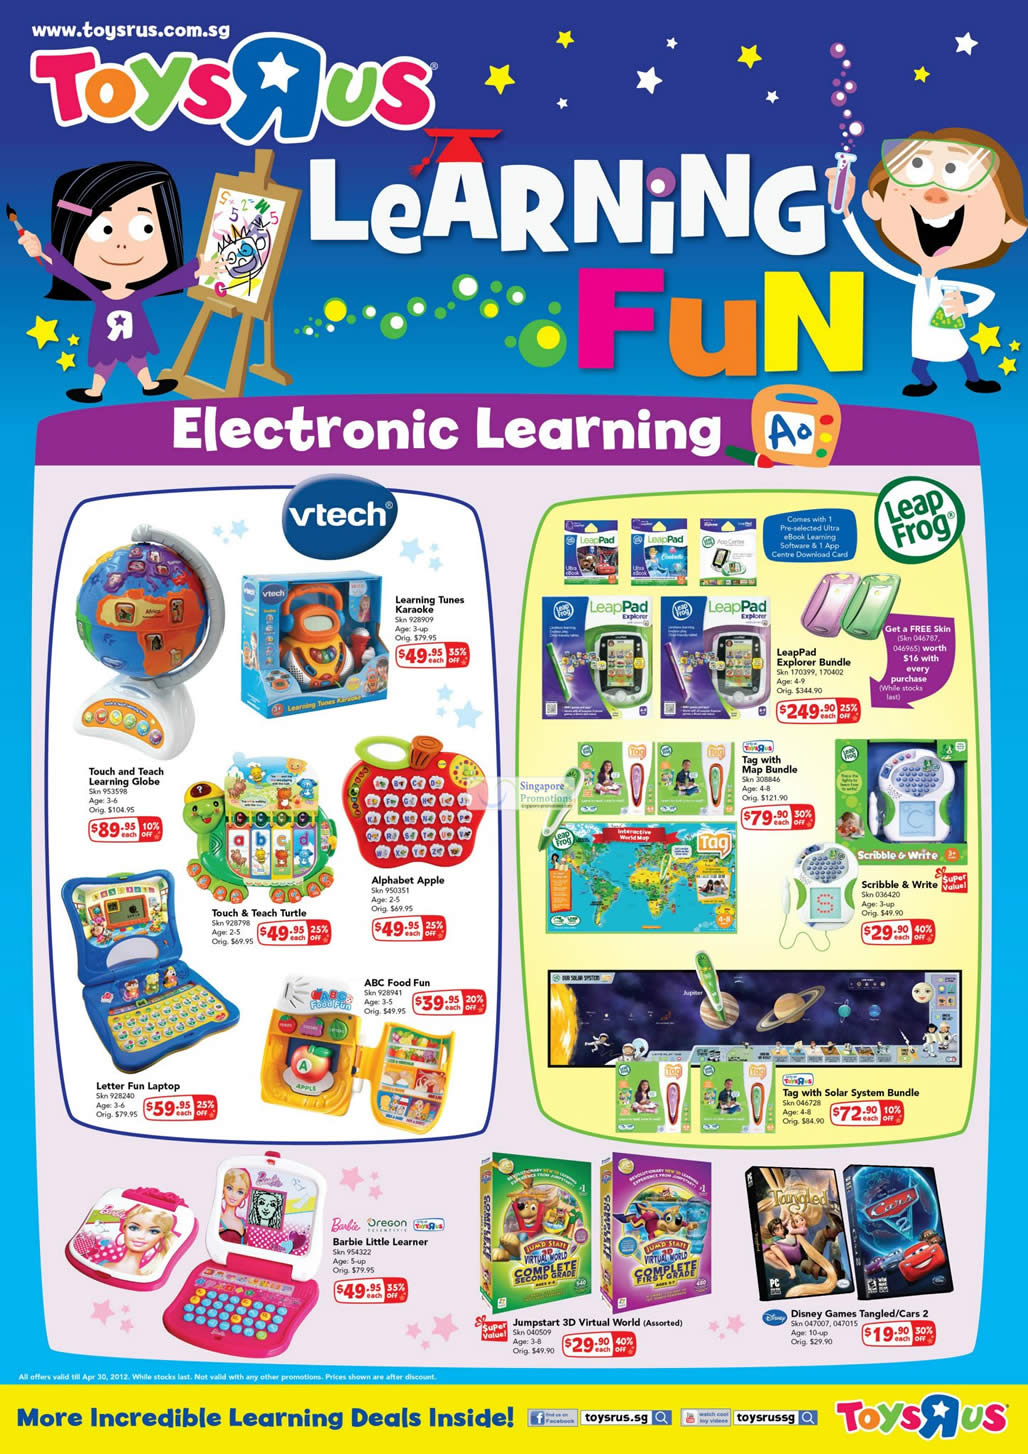 Vtech Touch and Teach Learning Globe, Vtech Learning Tunes Karaoke, Vtech Touch & Teach Turtle, Vtech Alphabet Apple, Vtech Letter Fun Laptop , Leap Frog LeapPad Explorer Bundle, Leap Frog Tag with Map Bundle, Leap Frog Tag with Solar System Bundle, Barbie Little Learner